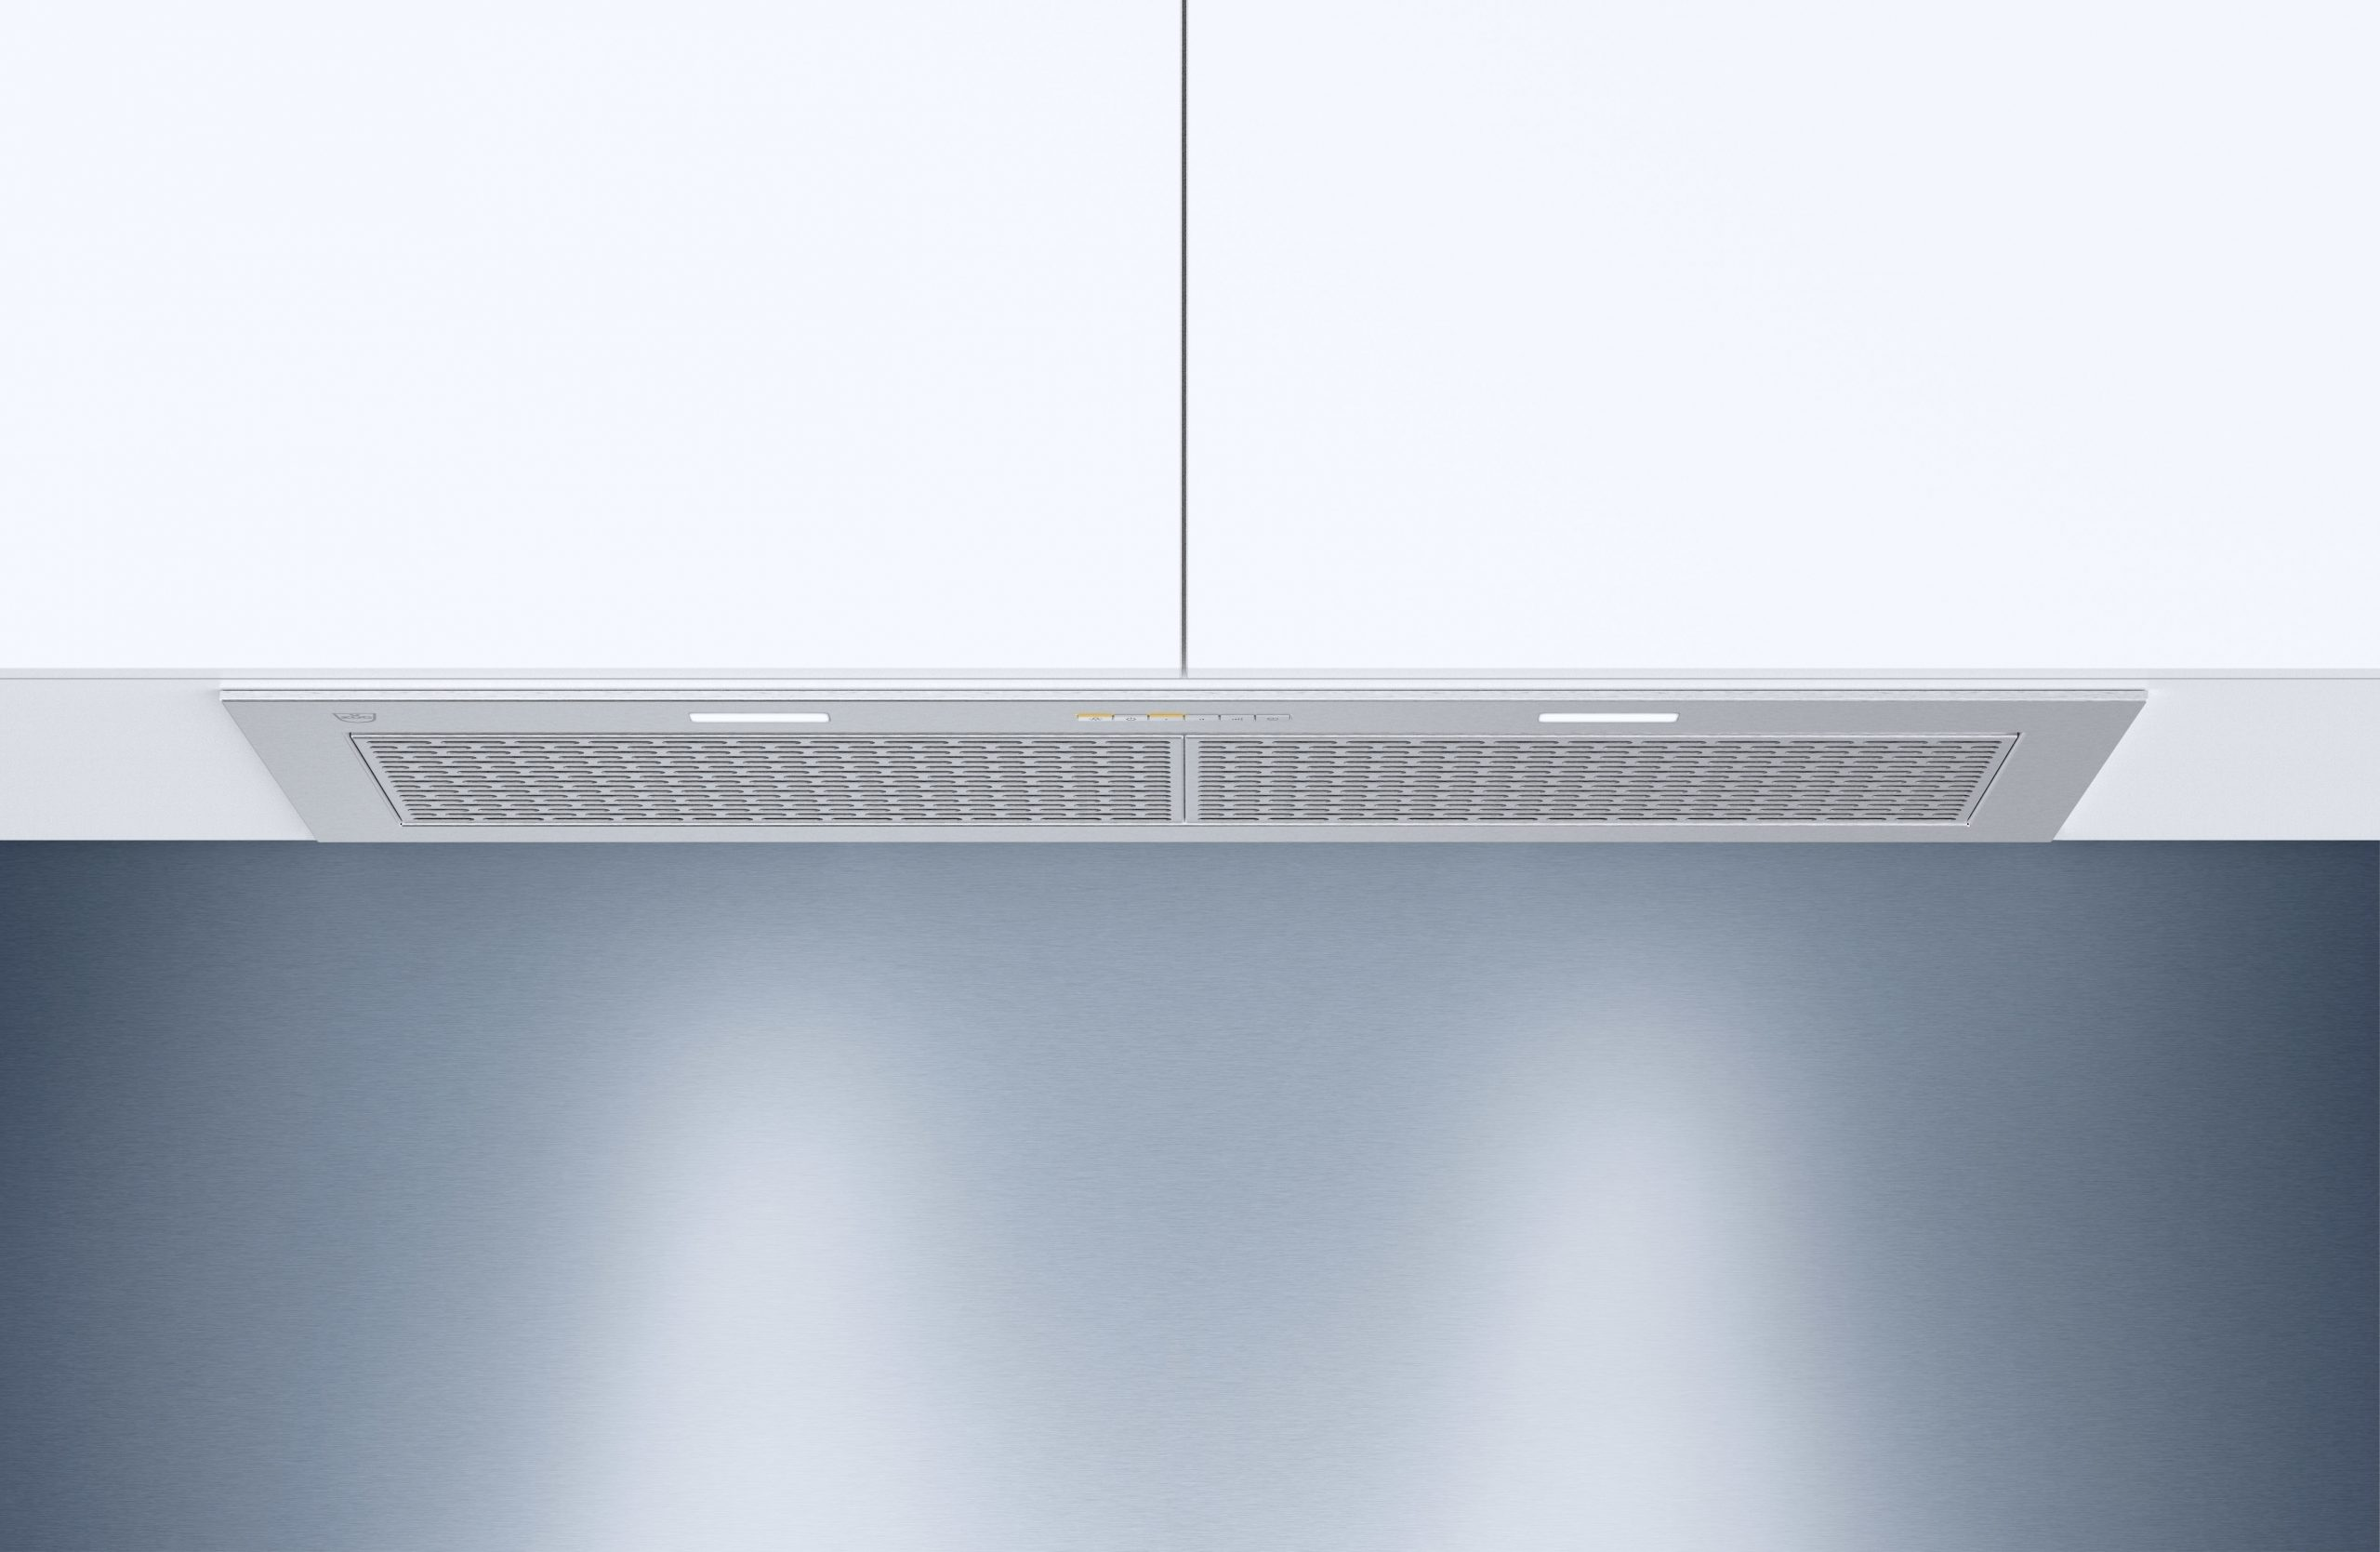 Airo Clear Cabinet V4000 with Twin Blower Range Hood